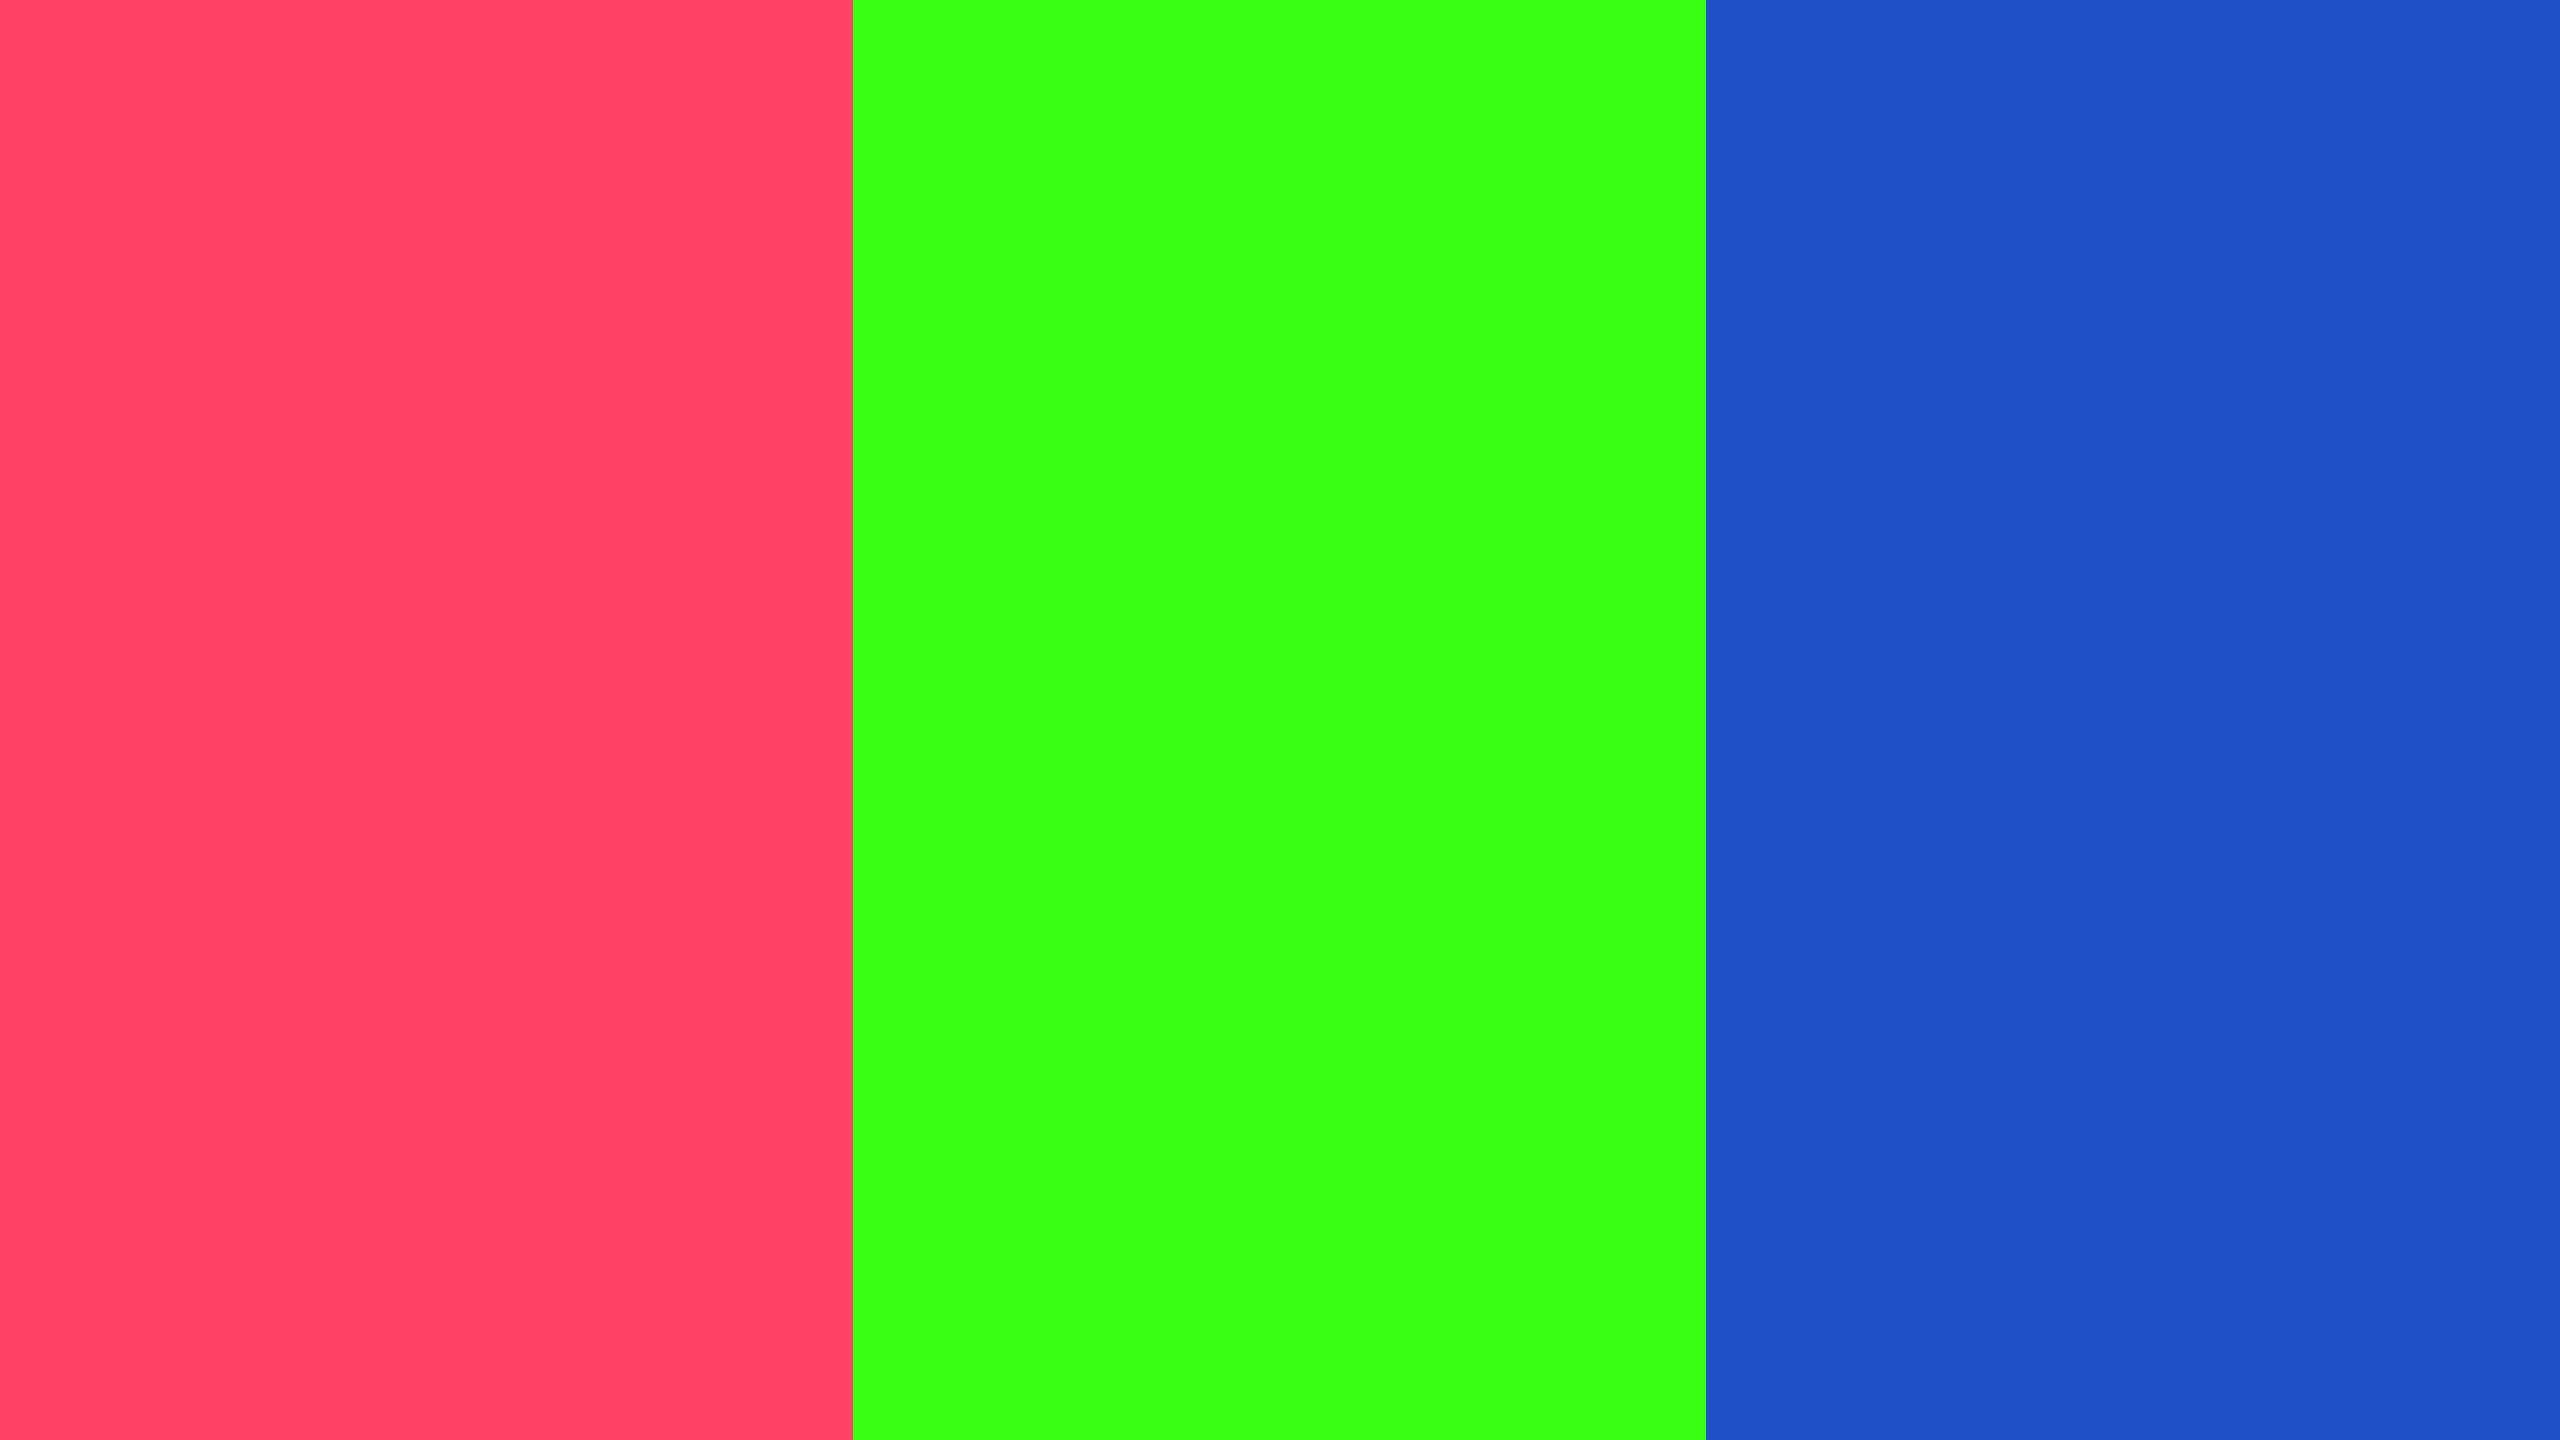 Neon Carrot Neon Fuchsia and Neon Green solid three color background 2560x1440